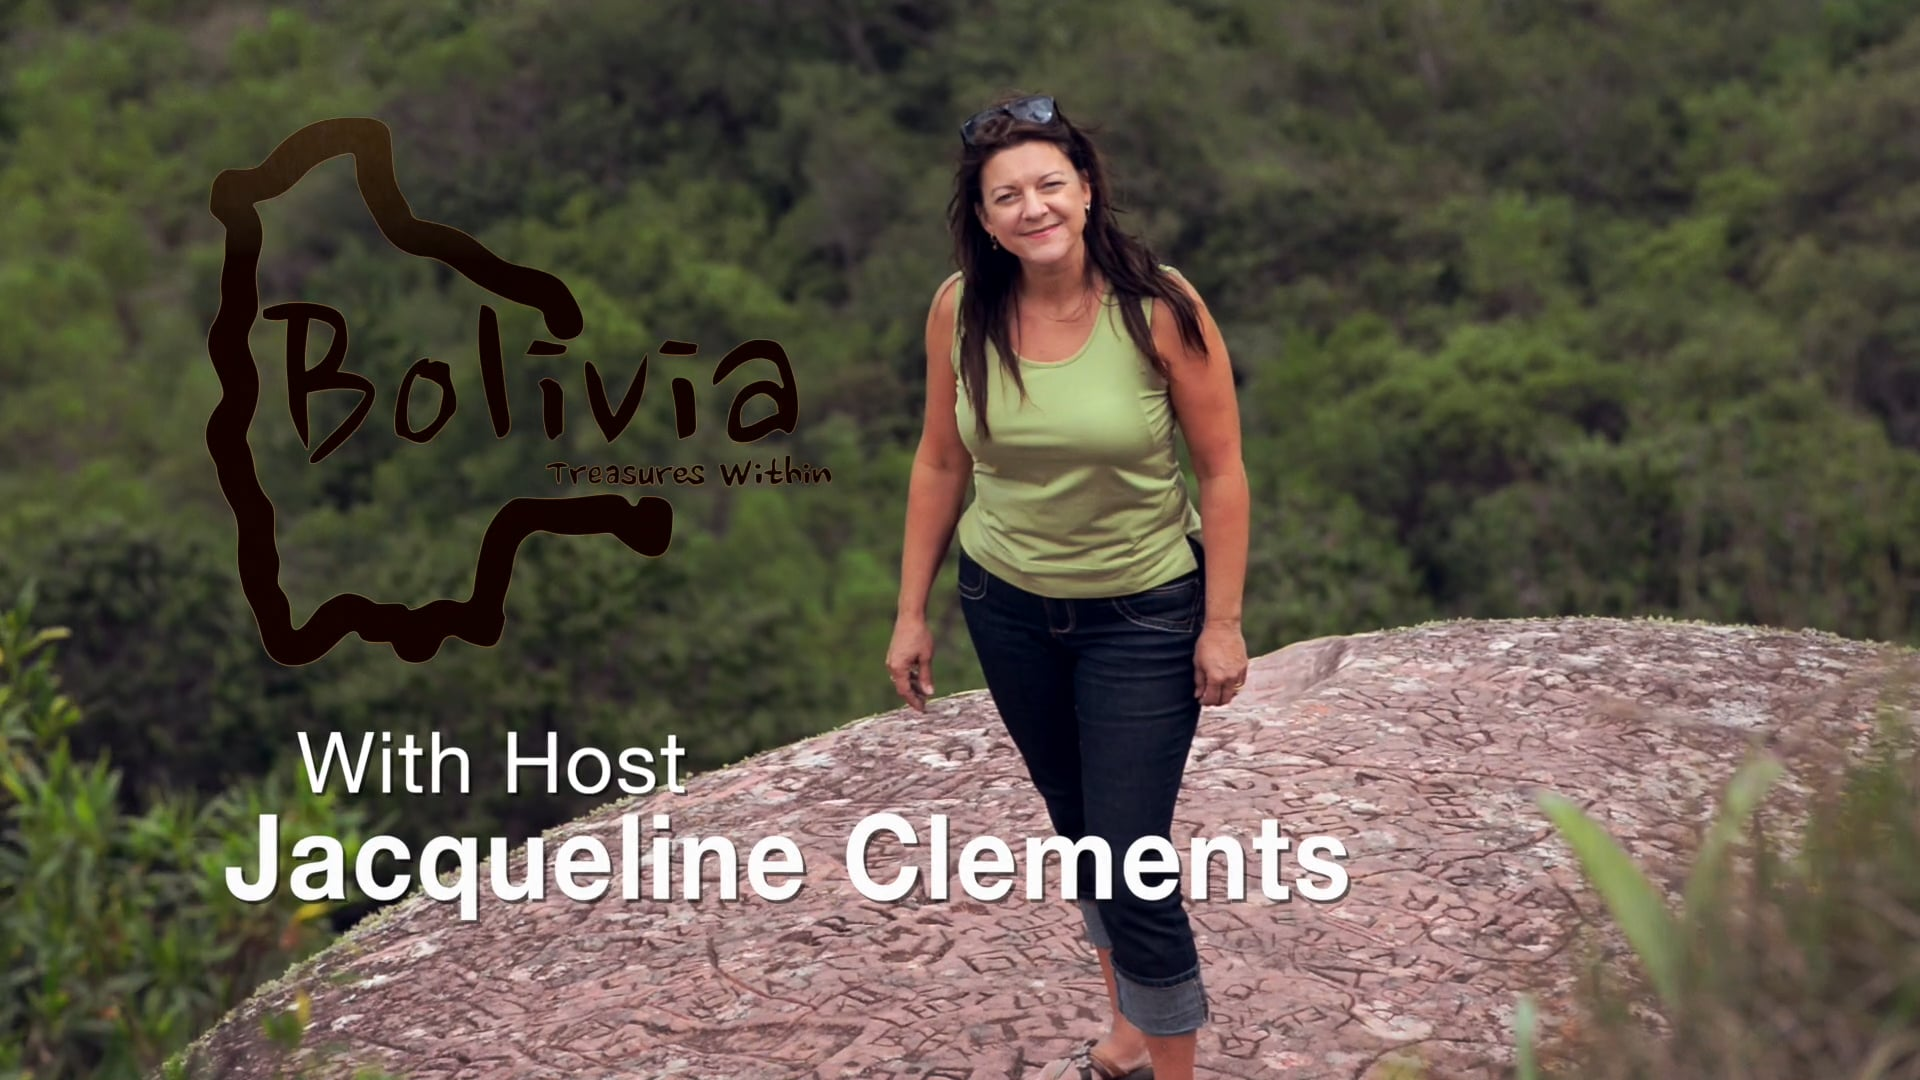 Jacqueline Clements – TCF4 Productions Bolivia Treasures Within Episode 3 – Teaser.mov